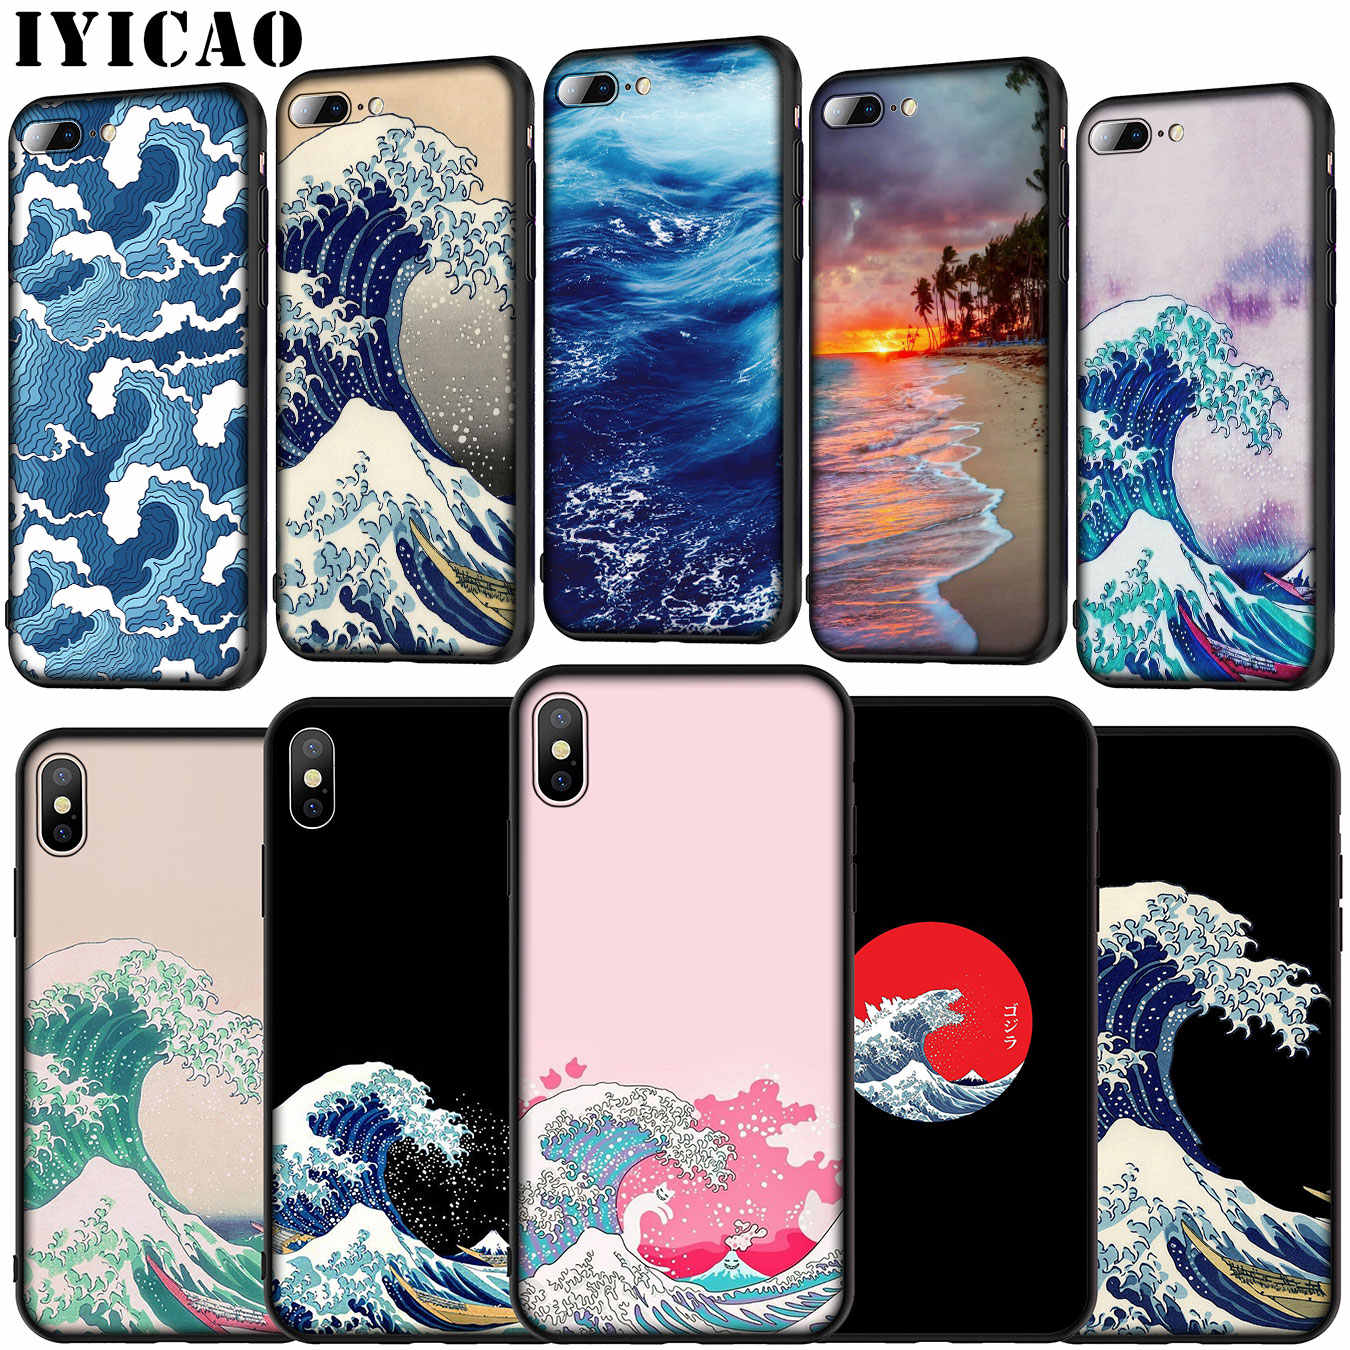 De Grote Golf Van Kanagawa Soft Silicone Cover Case Voor Iphone 11 Pro Xr X Xs Max 6 6S 7 8 Plus 5 5S Se Telefoon Case